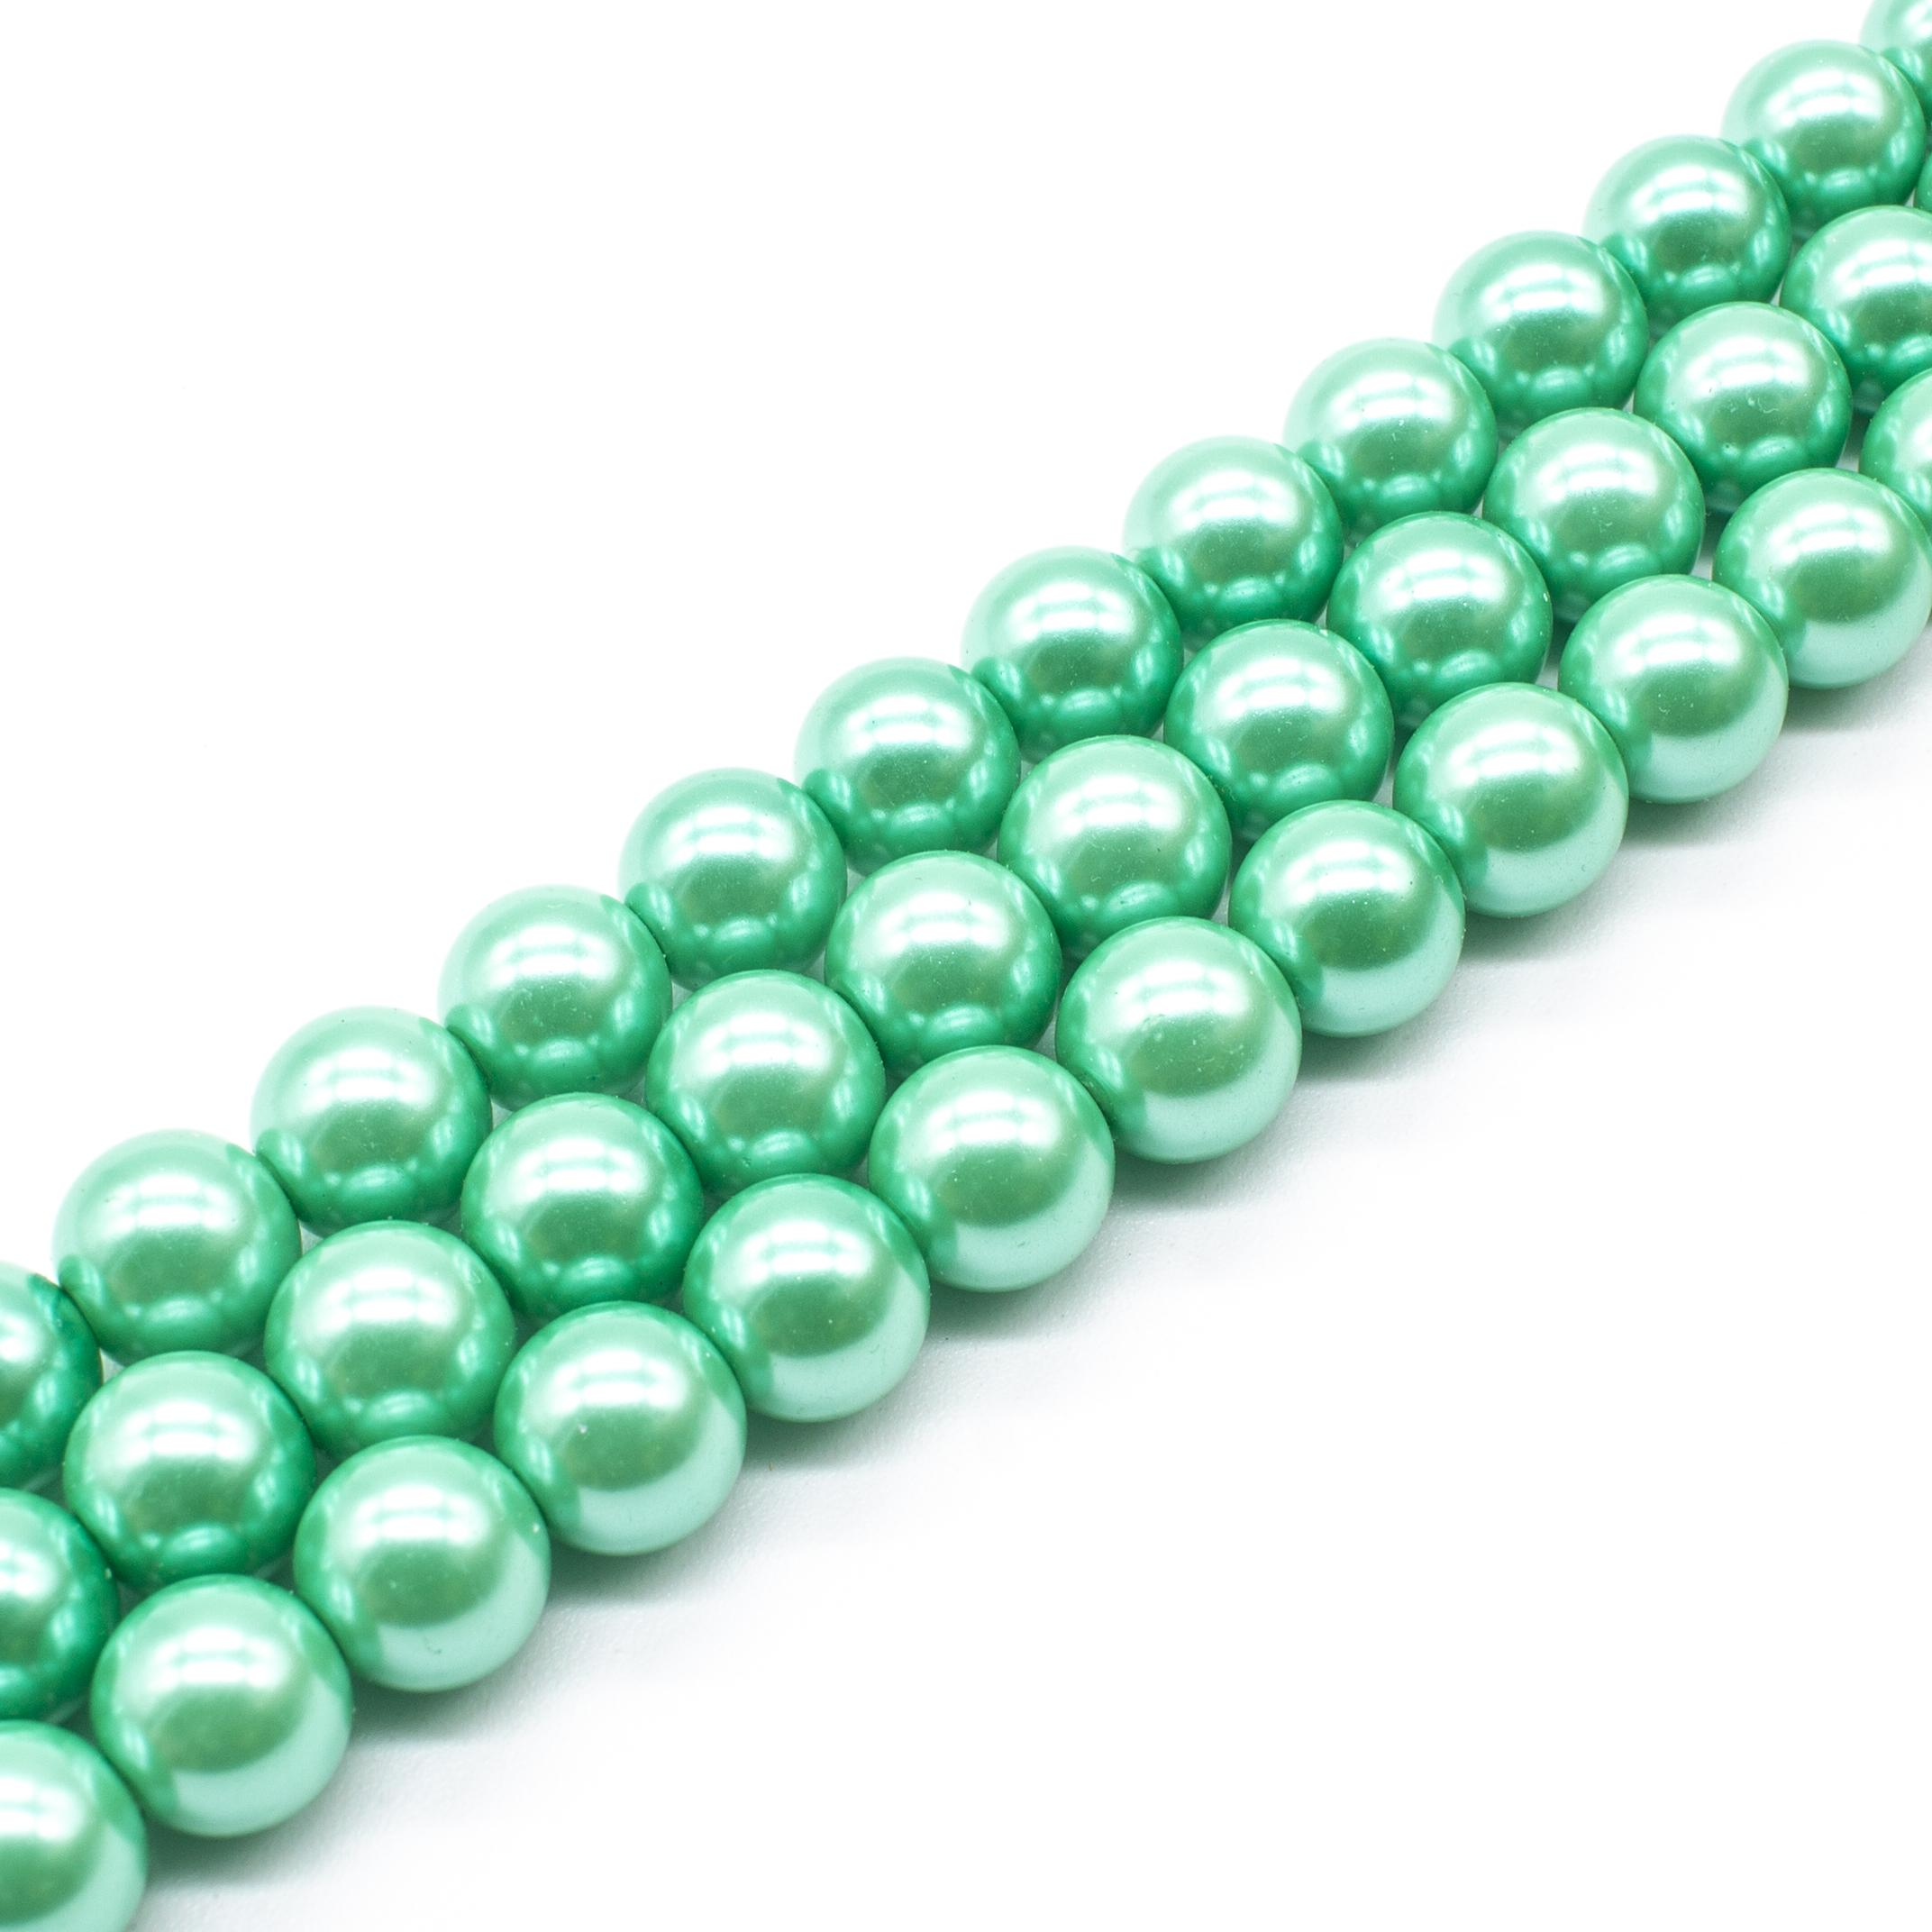 Glass Pearl Round Beads 10mm - Sea Foam Green